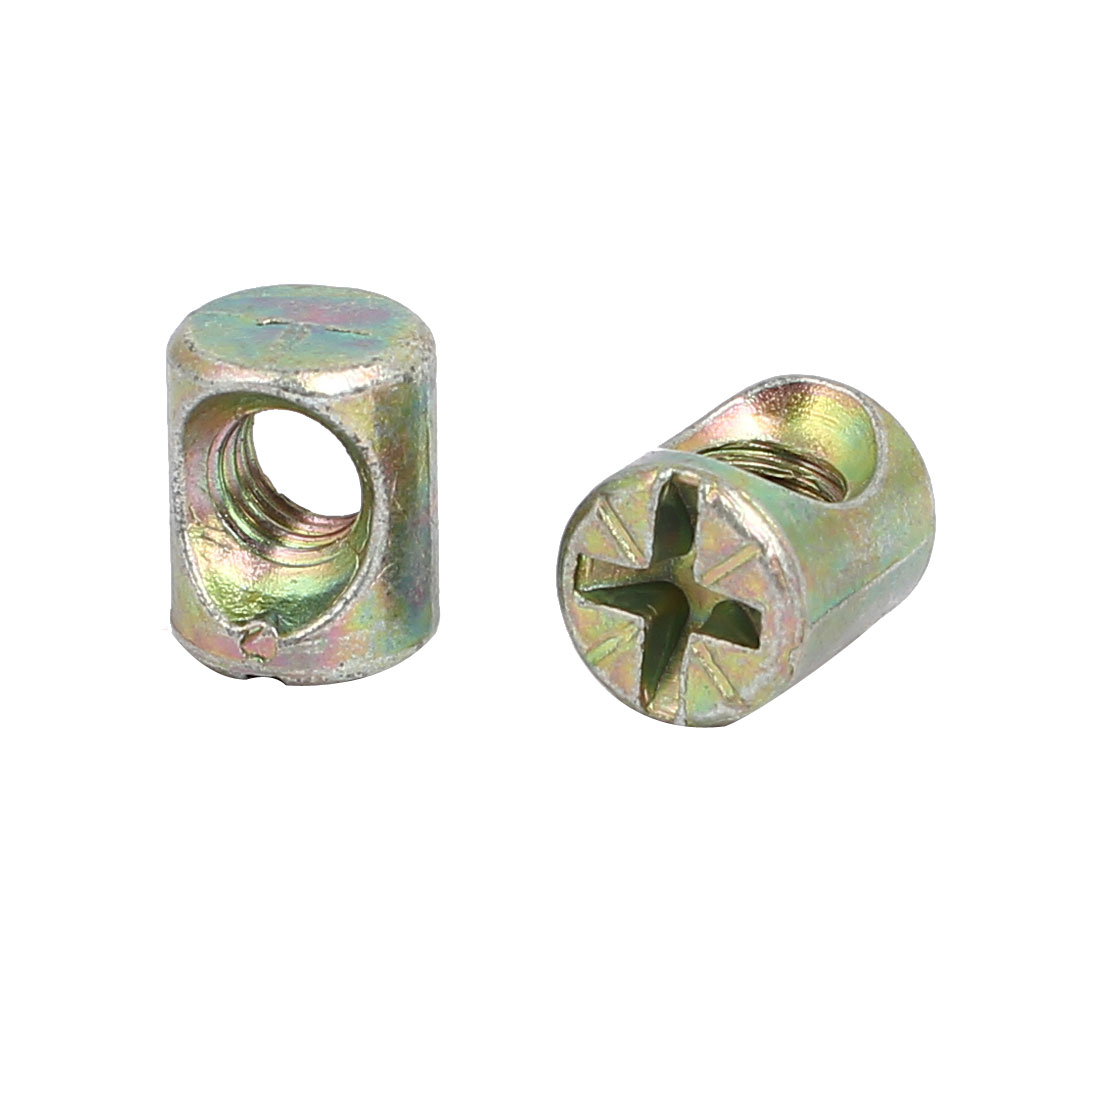 M6 x 12mm Cross Dowel Slotted Barrel Nuts 30PCS for Furniture Bed Chair - image 1 of 2